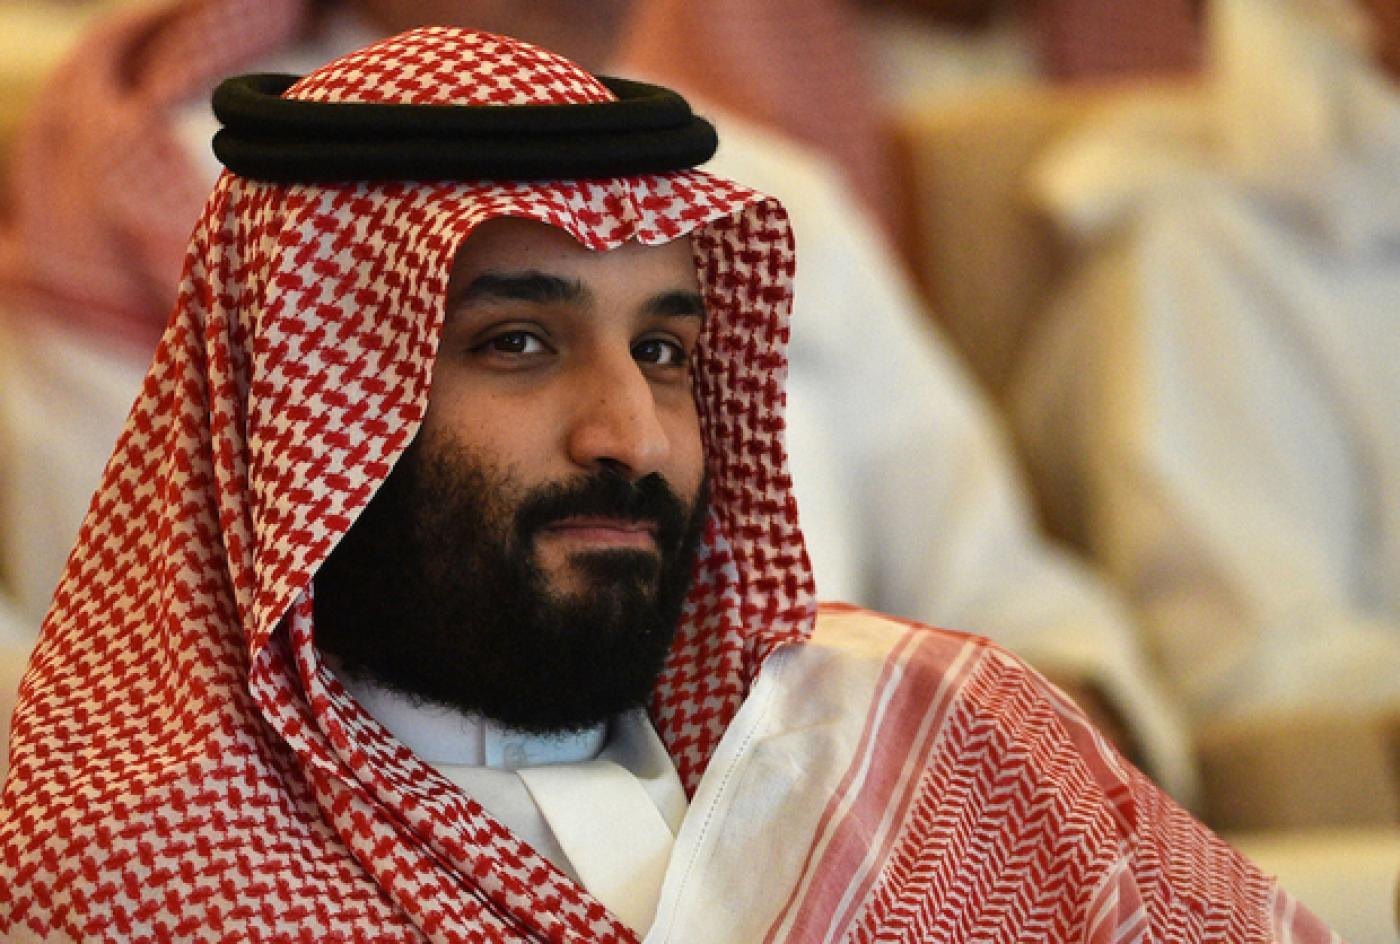 MBS is accused of sending a 50-person kill team to Canada